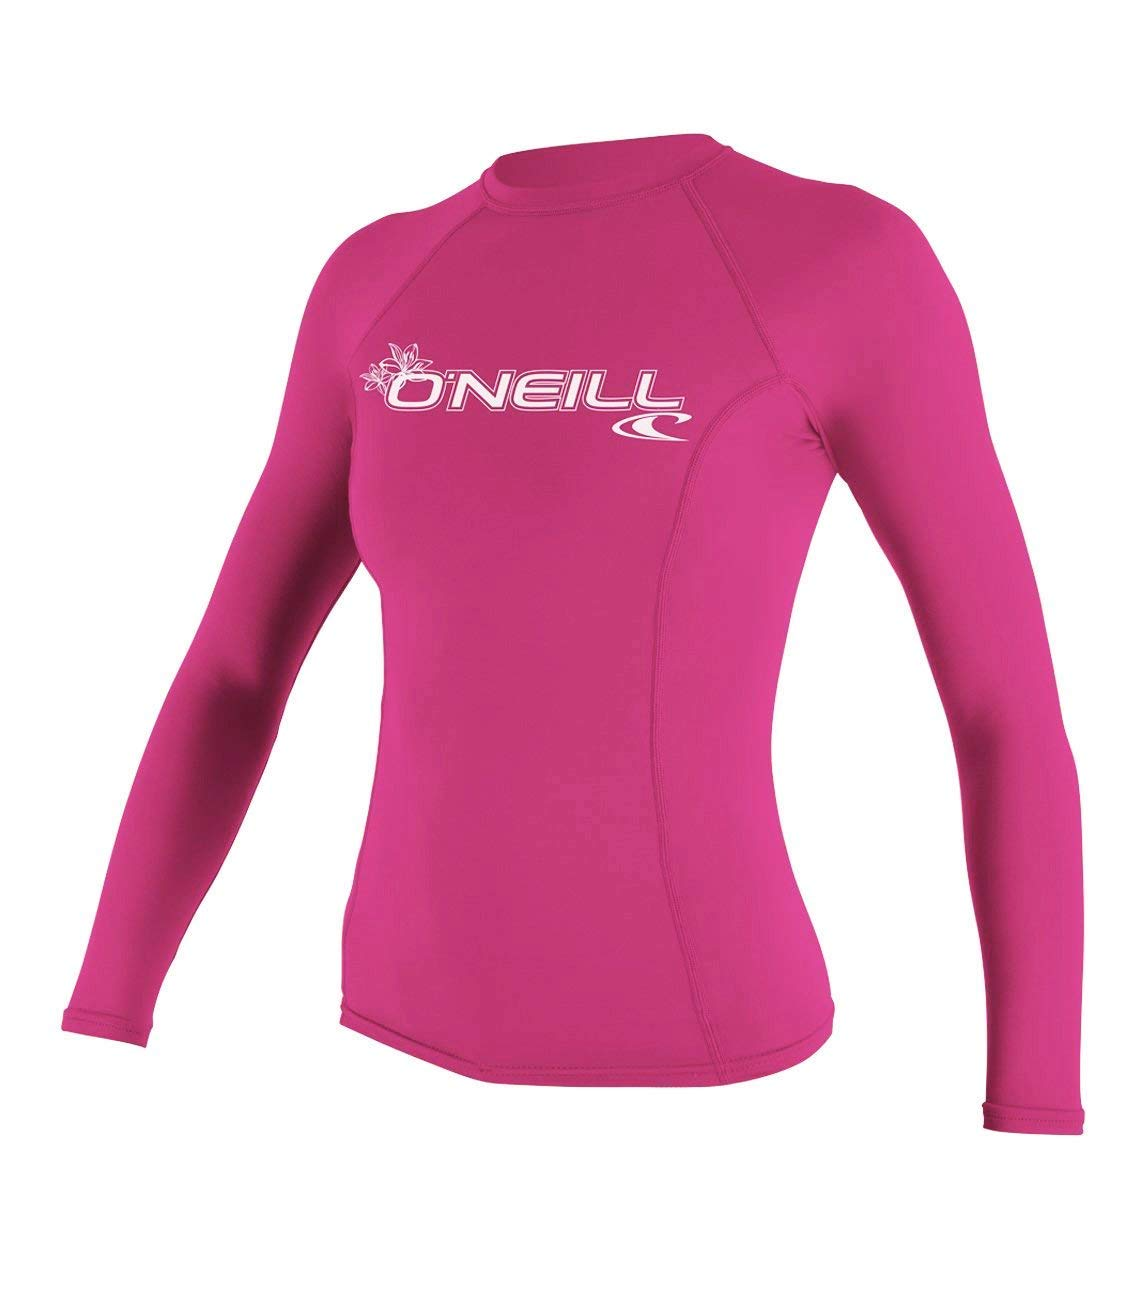 O'Neill  UV Sun Protection Womens Basic Skins Long Sleeve Crew Sun Shirt Rash Guard, Fox Pink, Small by O'Neill Wetsuits